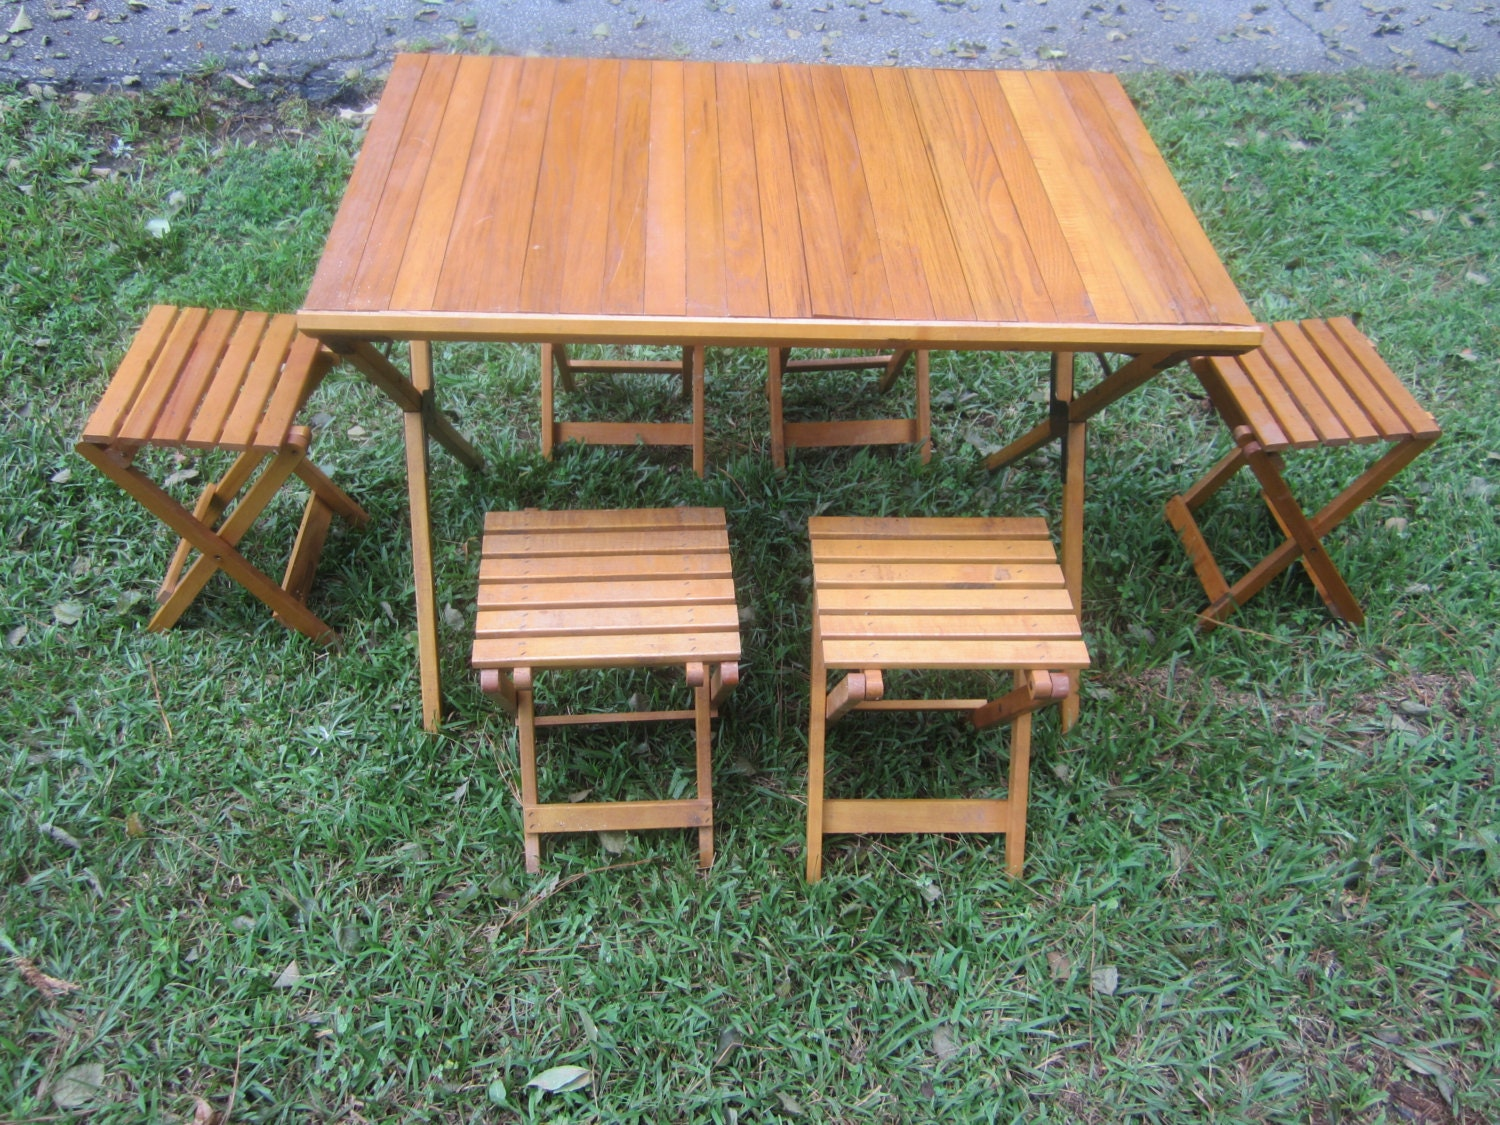 Vintage Folding Wooden Camping Dining Table and Chairs by AsAttic